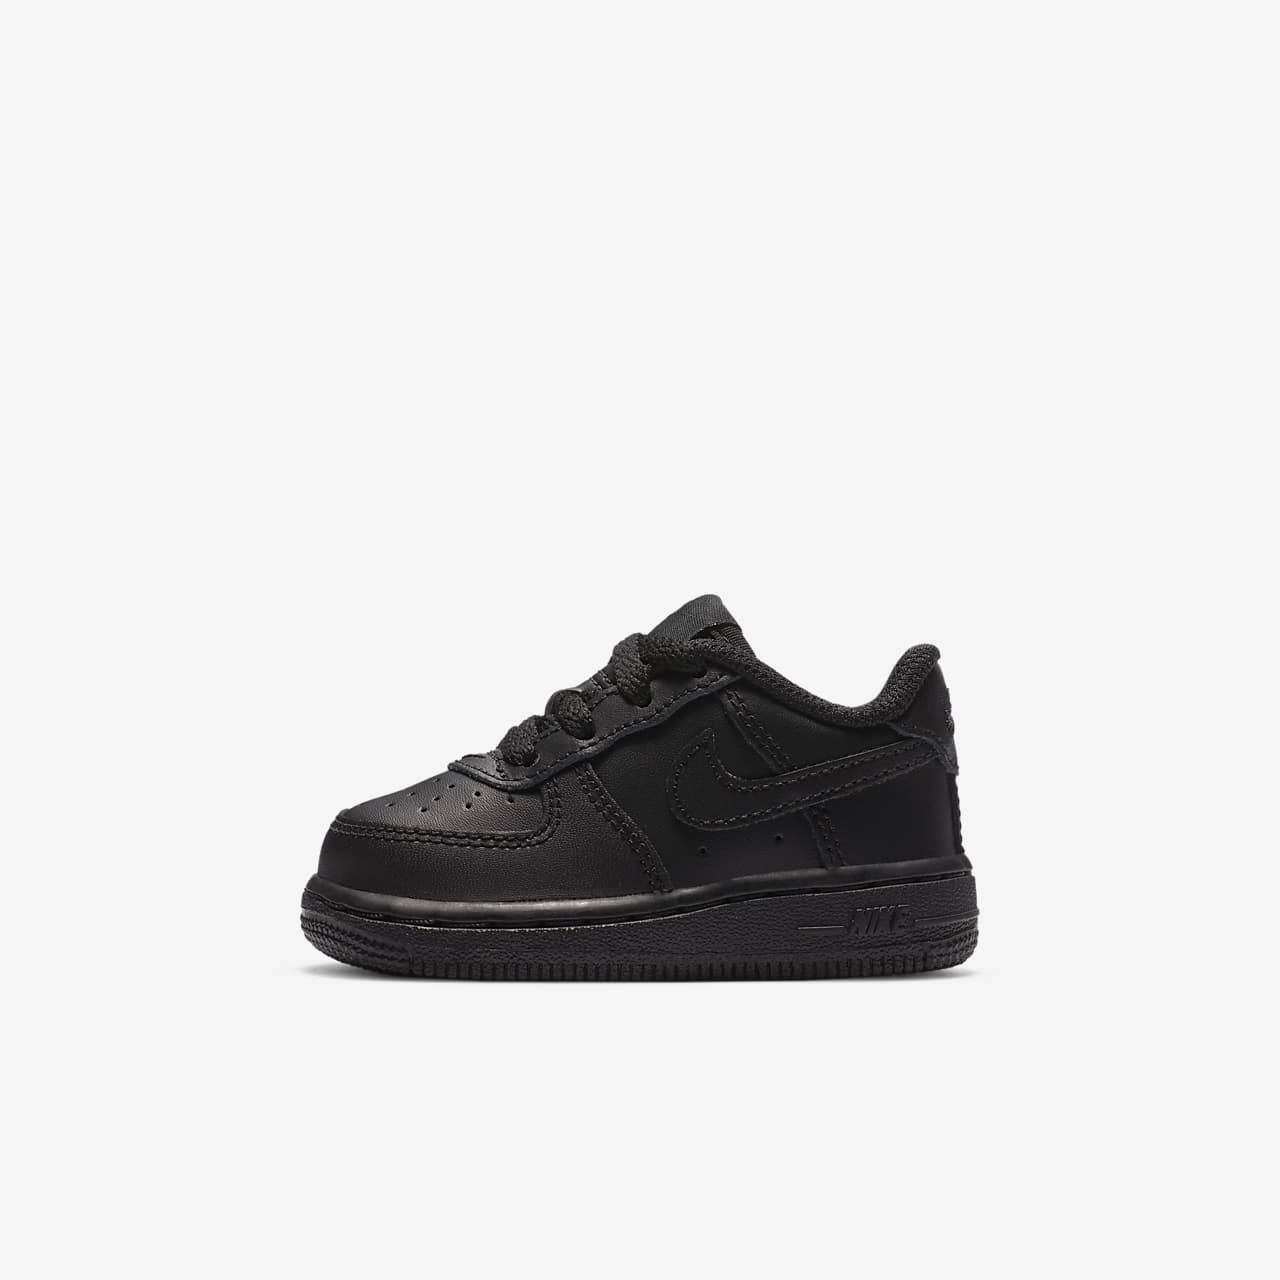 3a9569a7c53 Nike Air Force 1 06 Infant Toddler Shoe. Nike.com